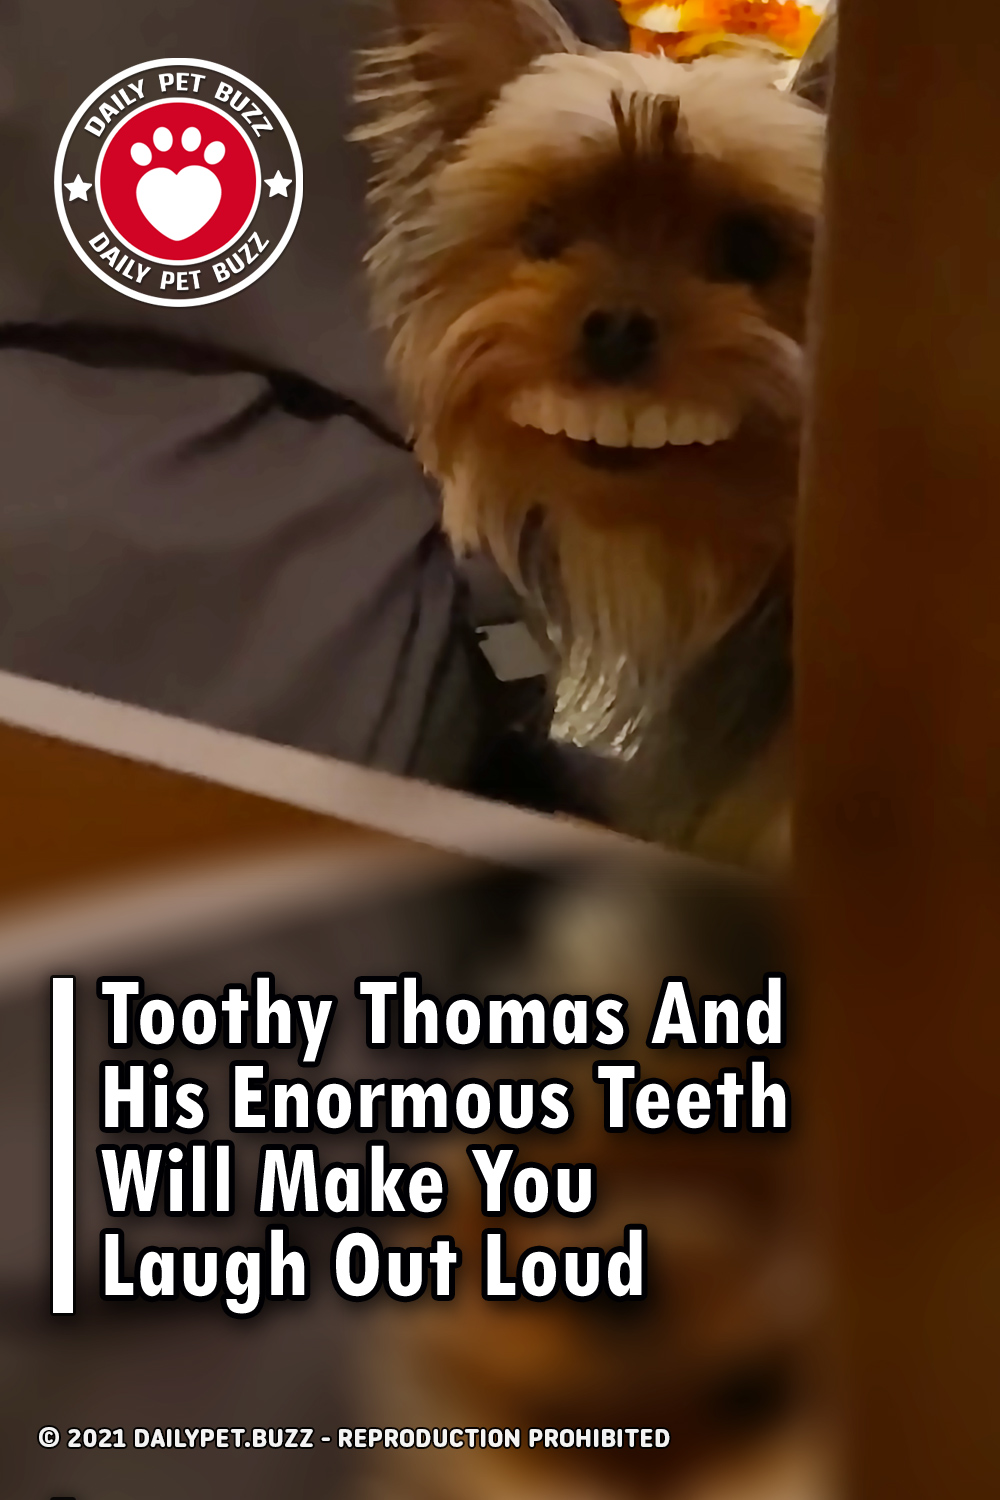 Toothy Thomas And His Enormous Teeth Will Make You Laugh Out Loud